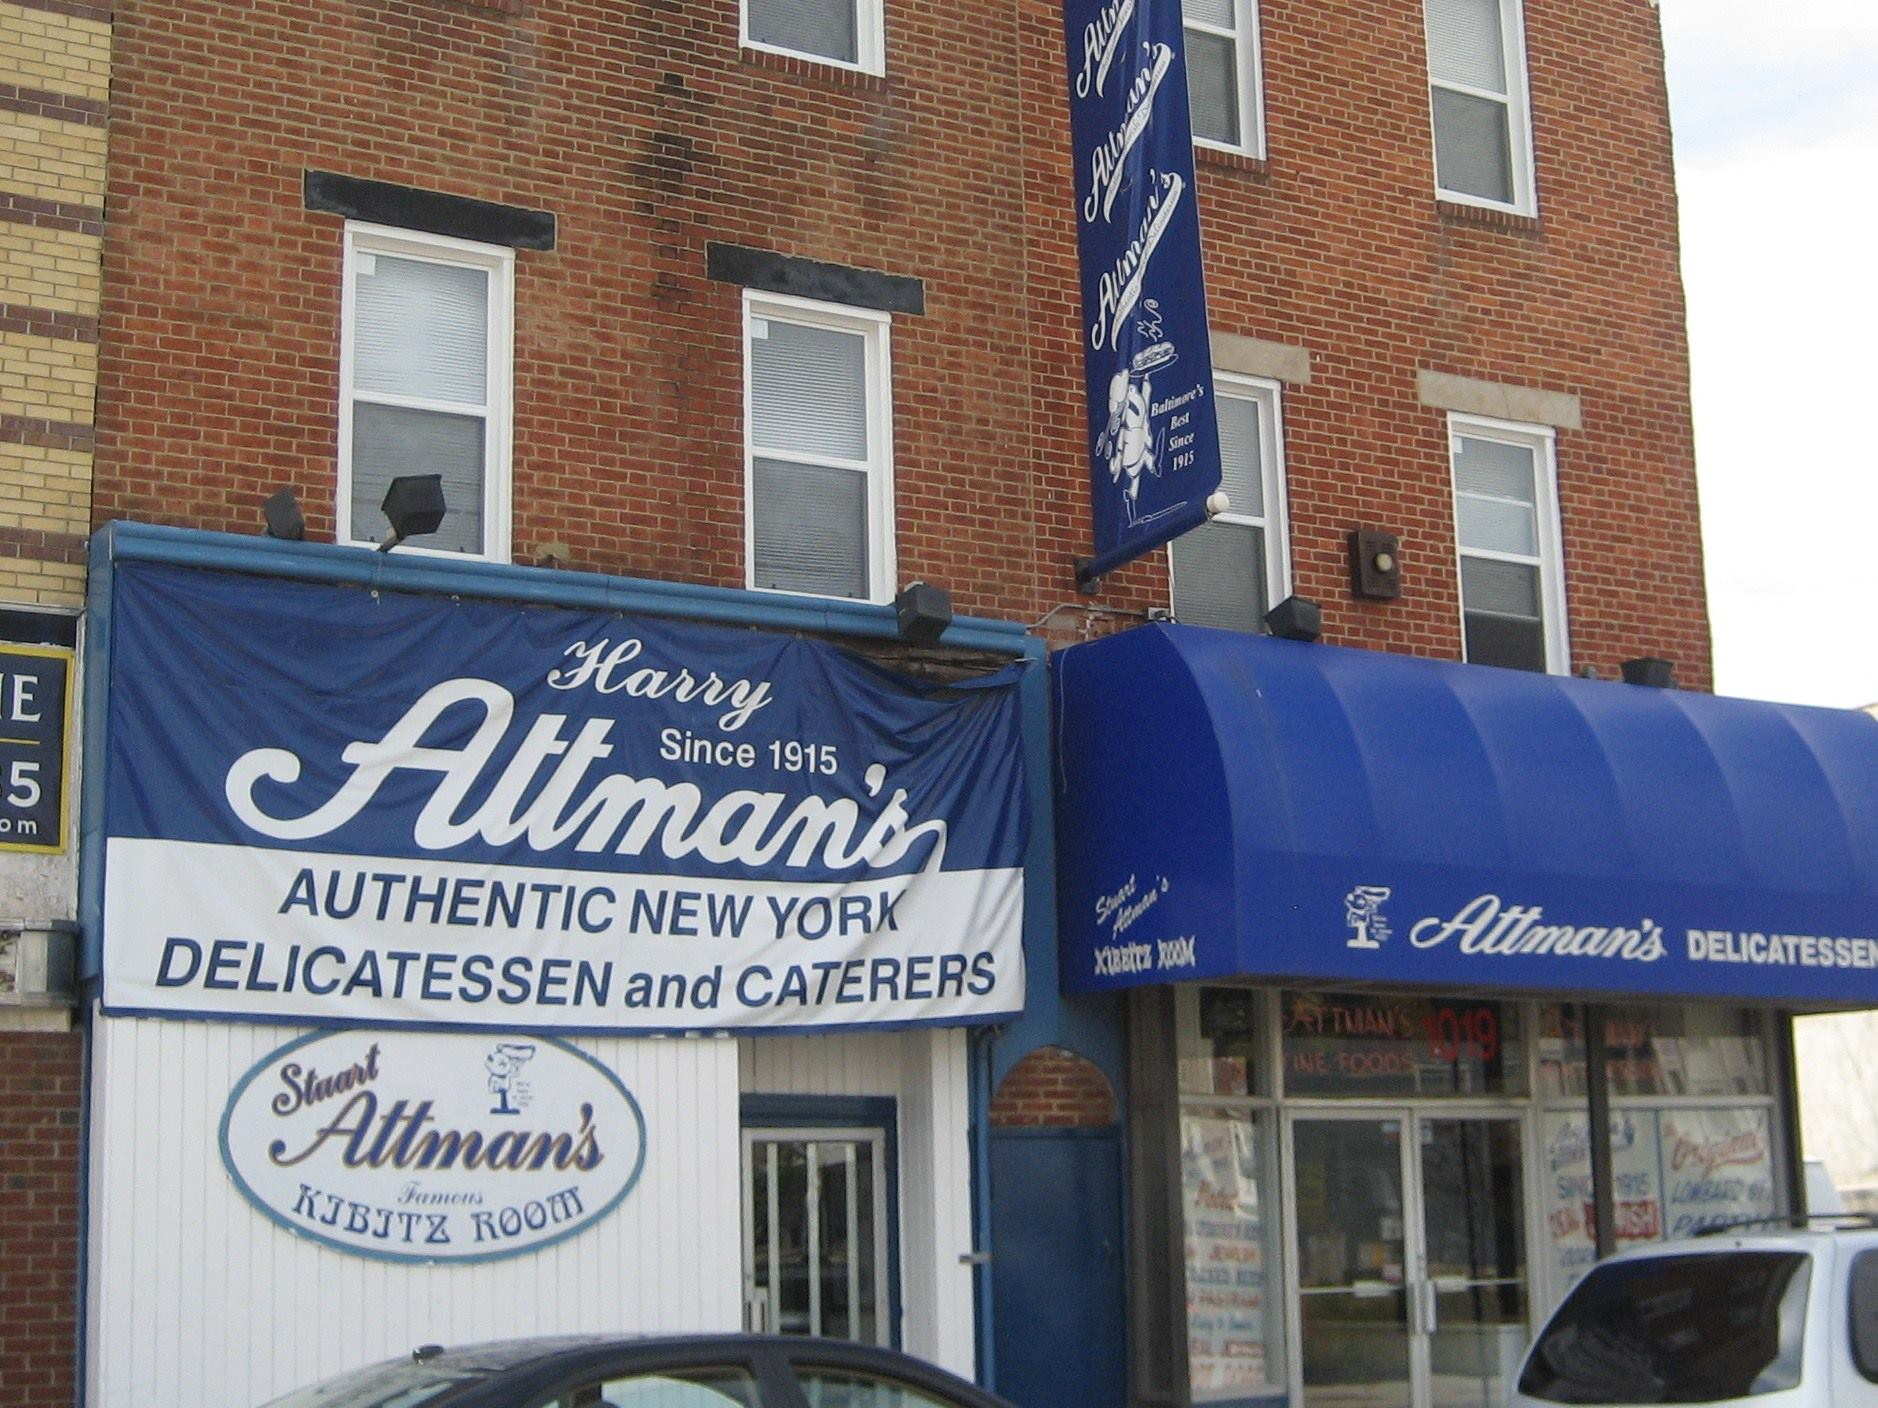 It All Started With a Deli: The Attmans of Lombard Street